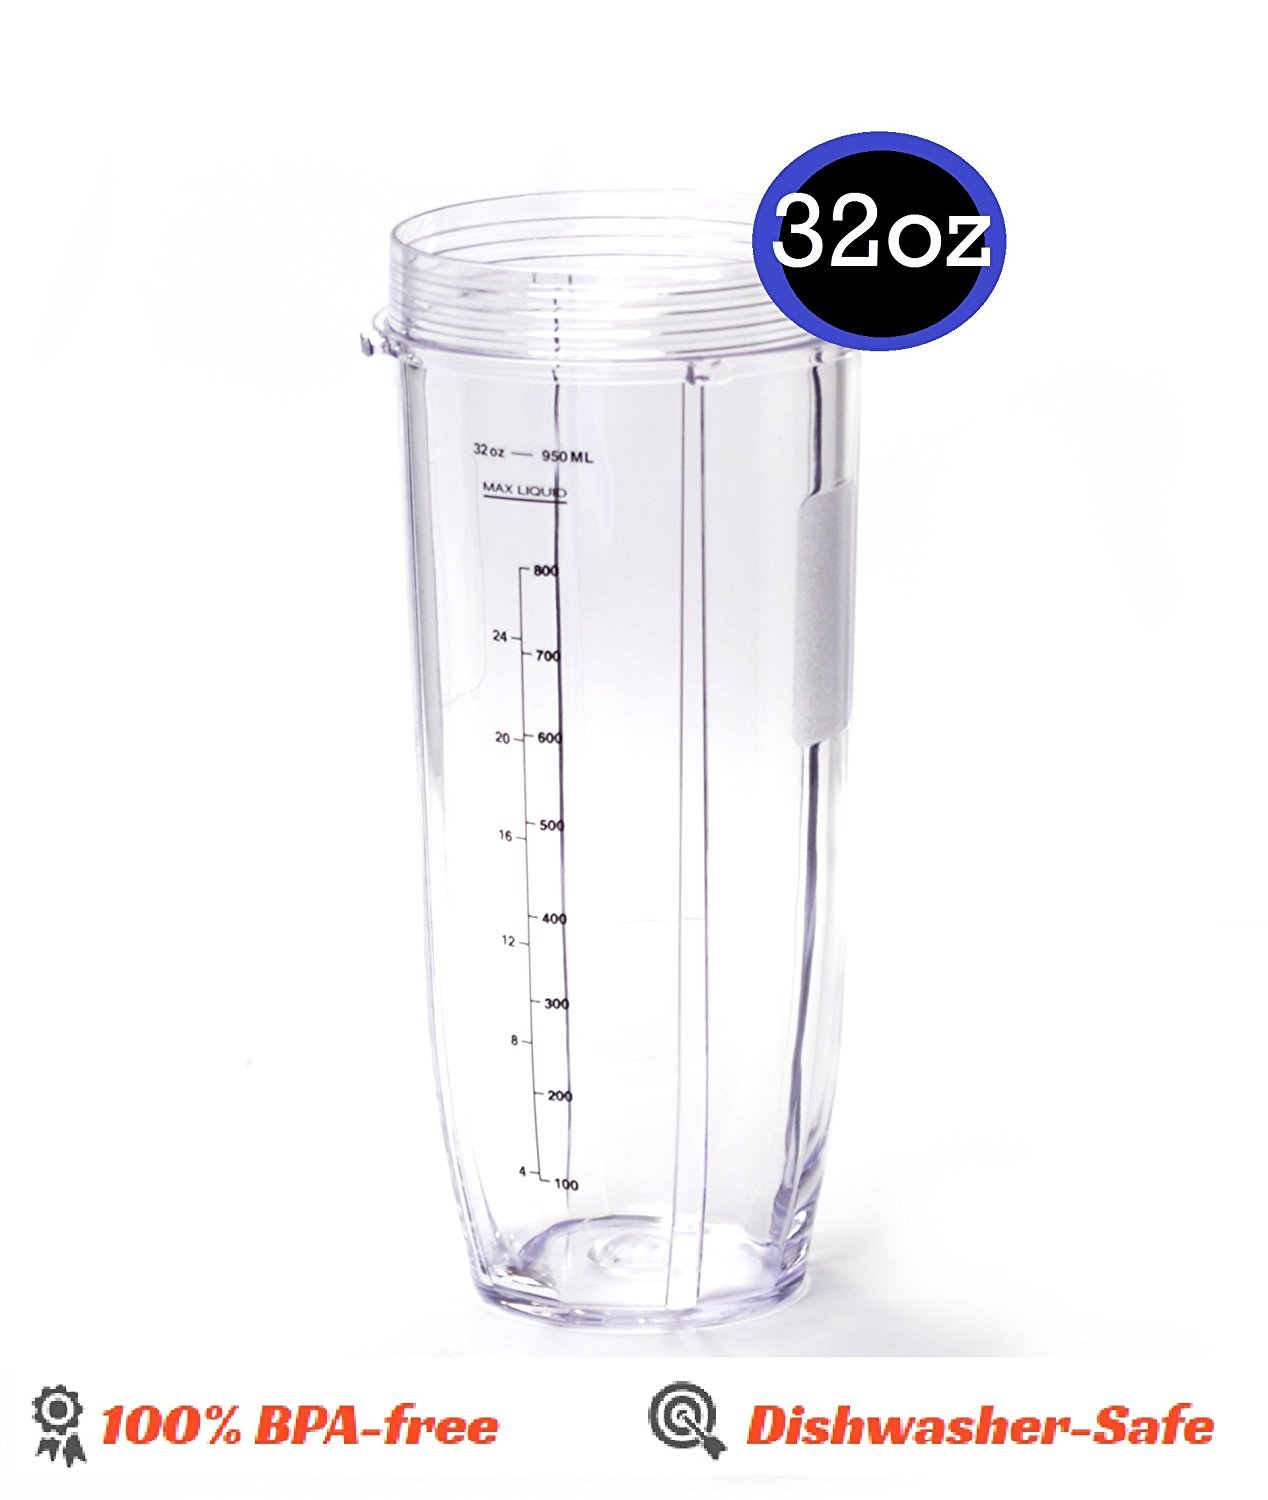 32OZ Large Multi-Serve Cup with Sip And Seal Lid replacement part for Nutri NutriNinja Auto iQ by Enbizio (Image #2)